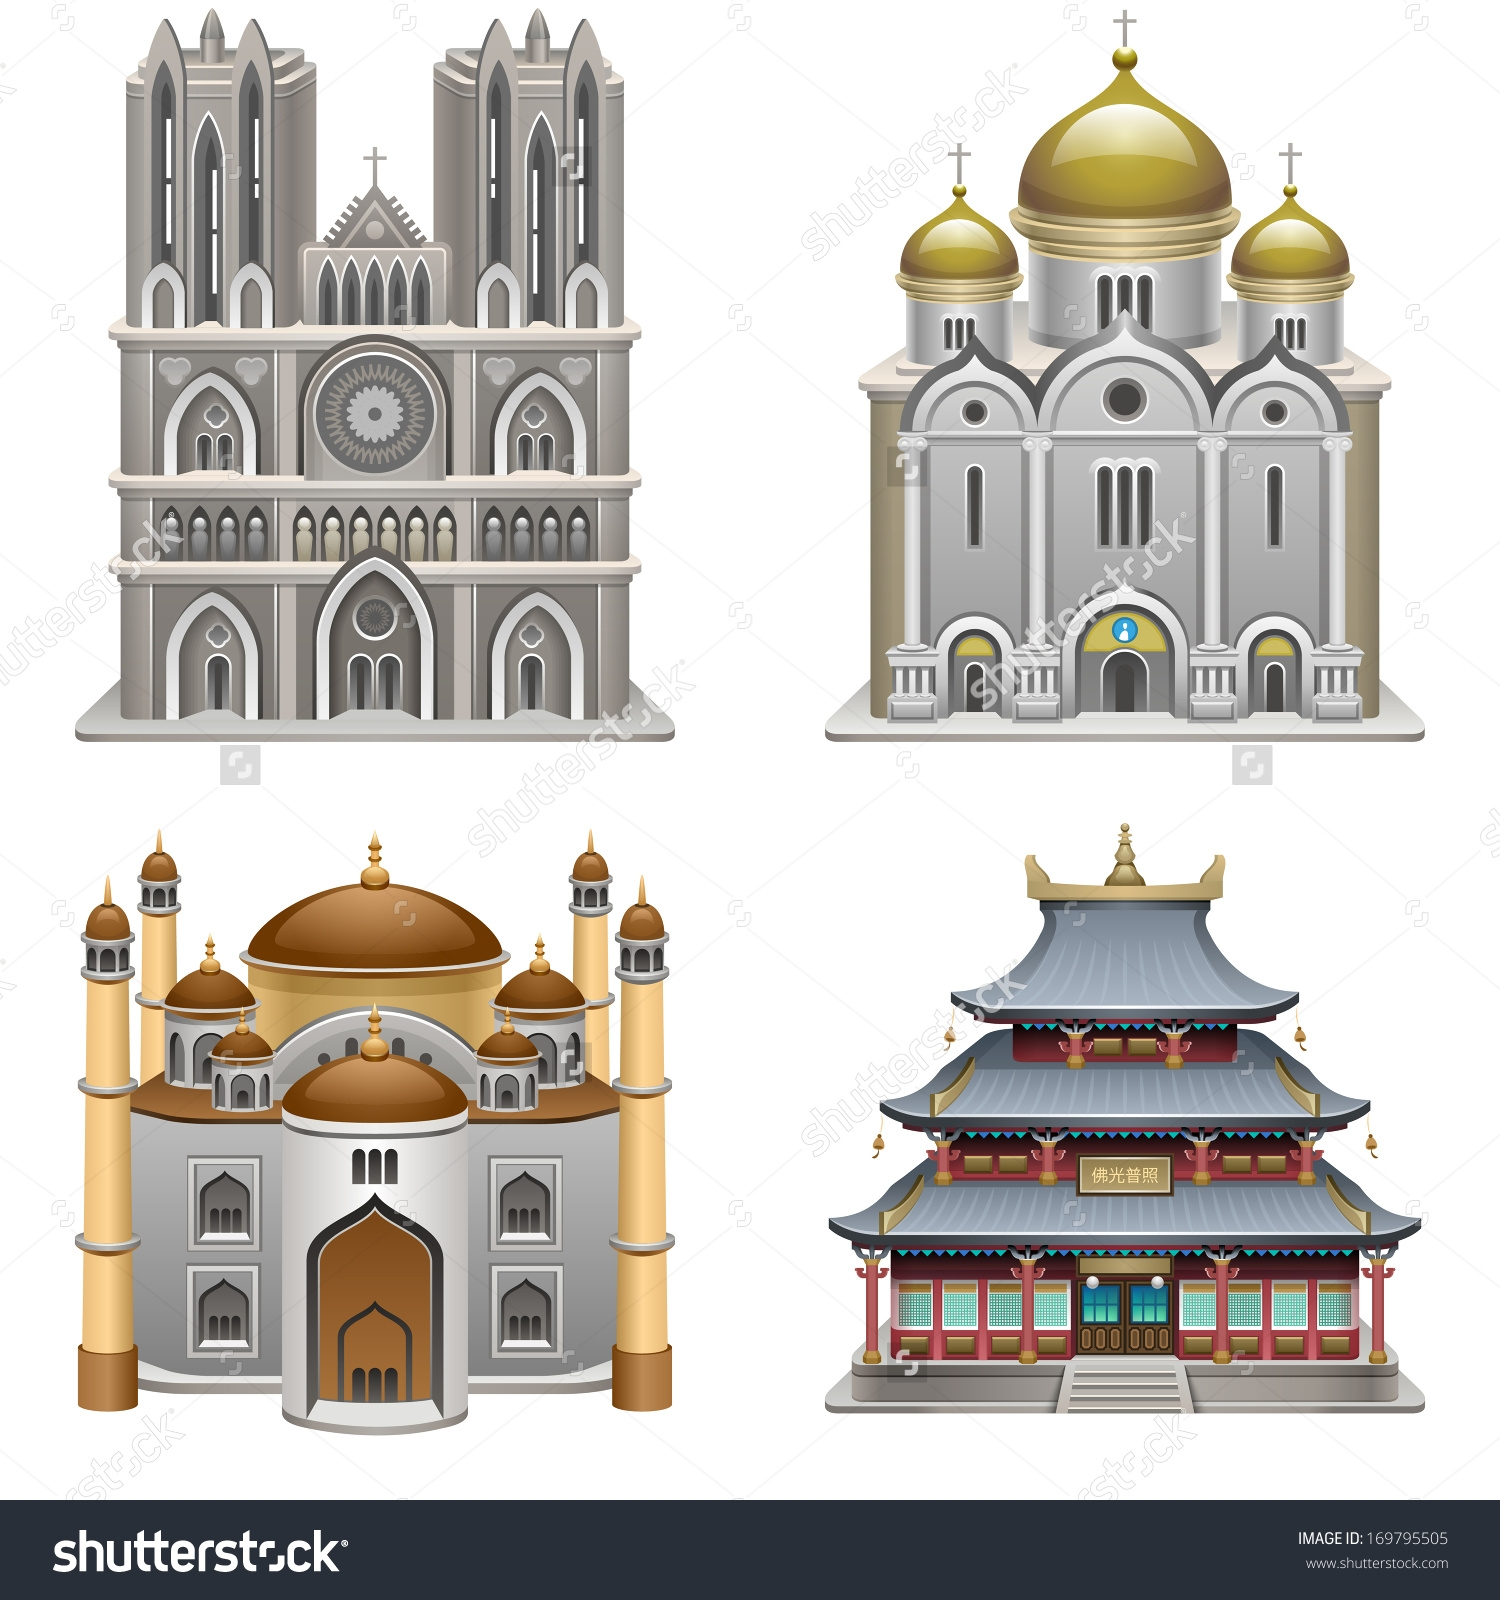 Place Of Worship Clipart.